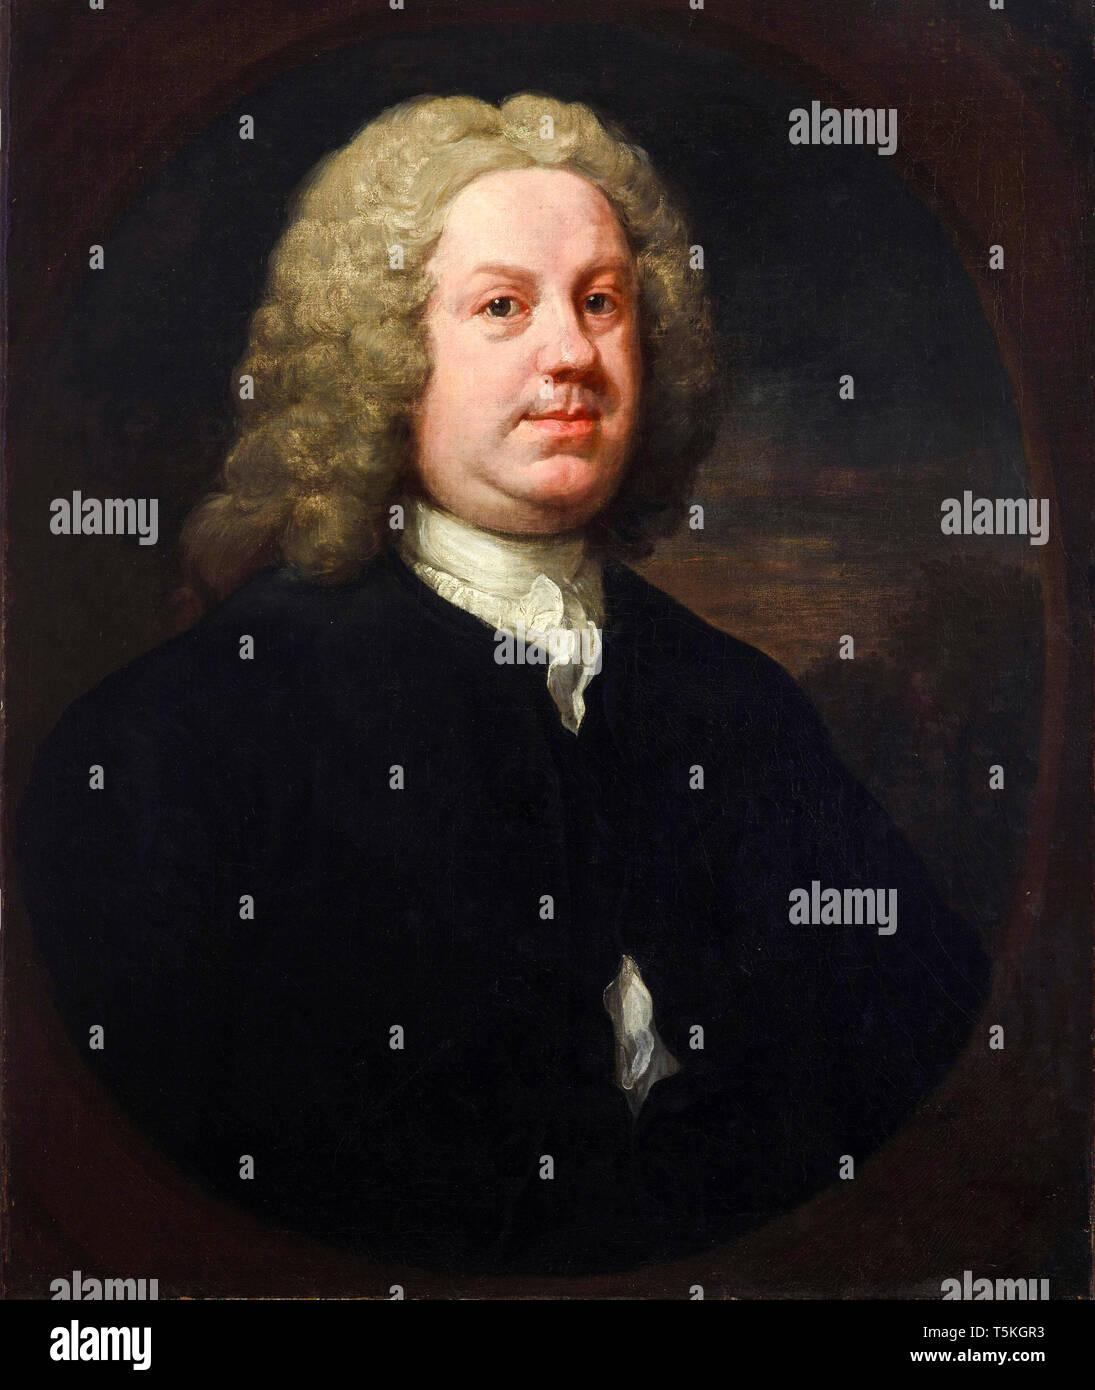 William Hogarth, Dr Benjamin Hoadly MD, portrait painting, early 1740s Stock Photo